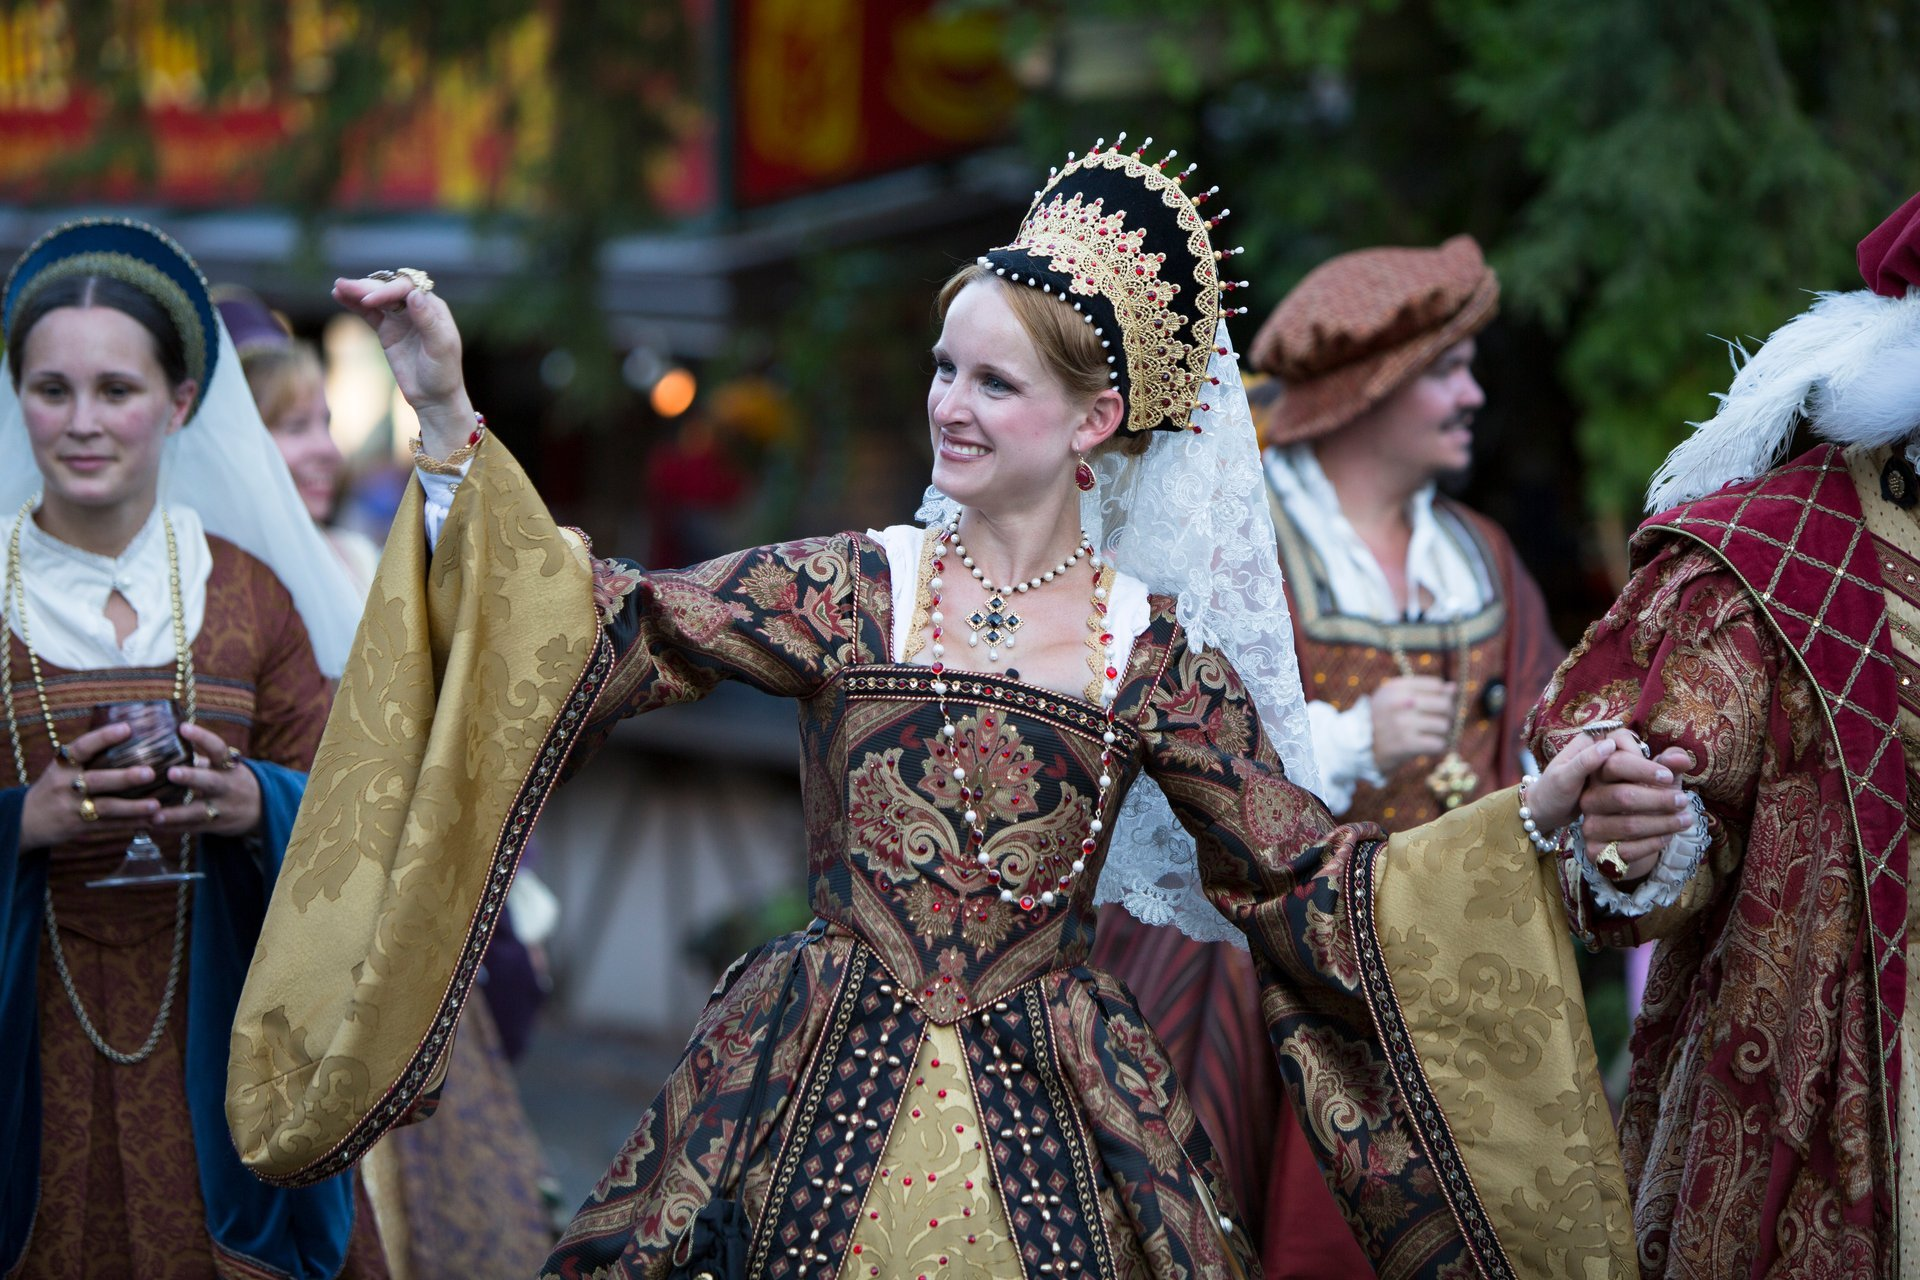 Best time to see Pennsylvania Renaissance Faire in Pennsylvania 2020